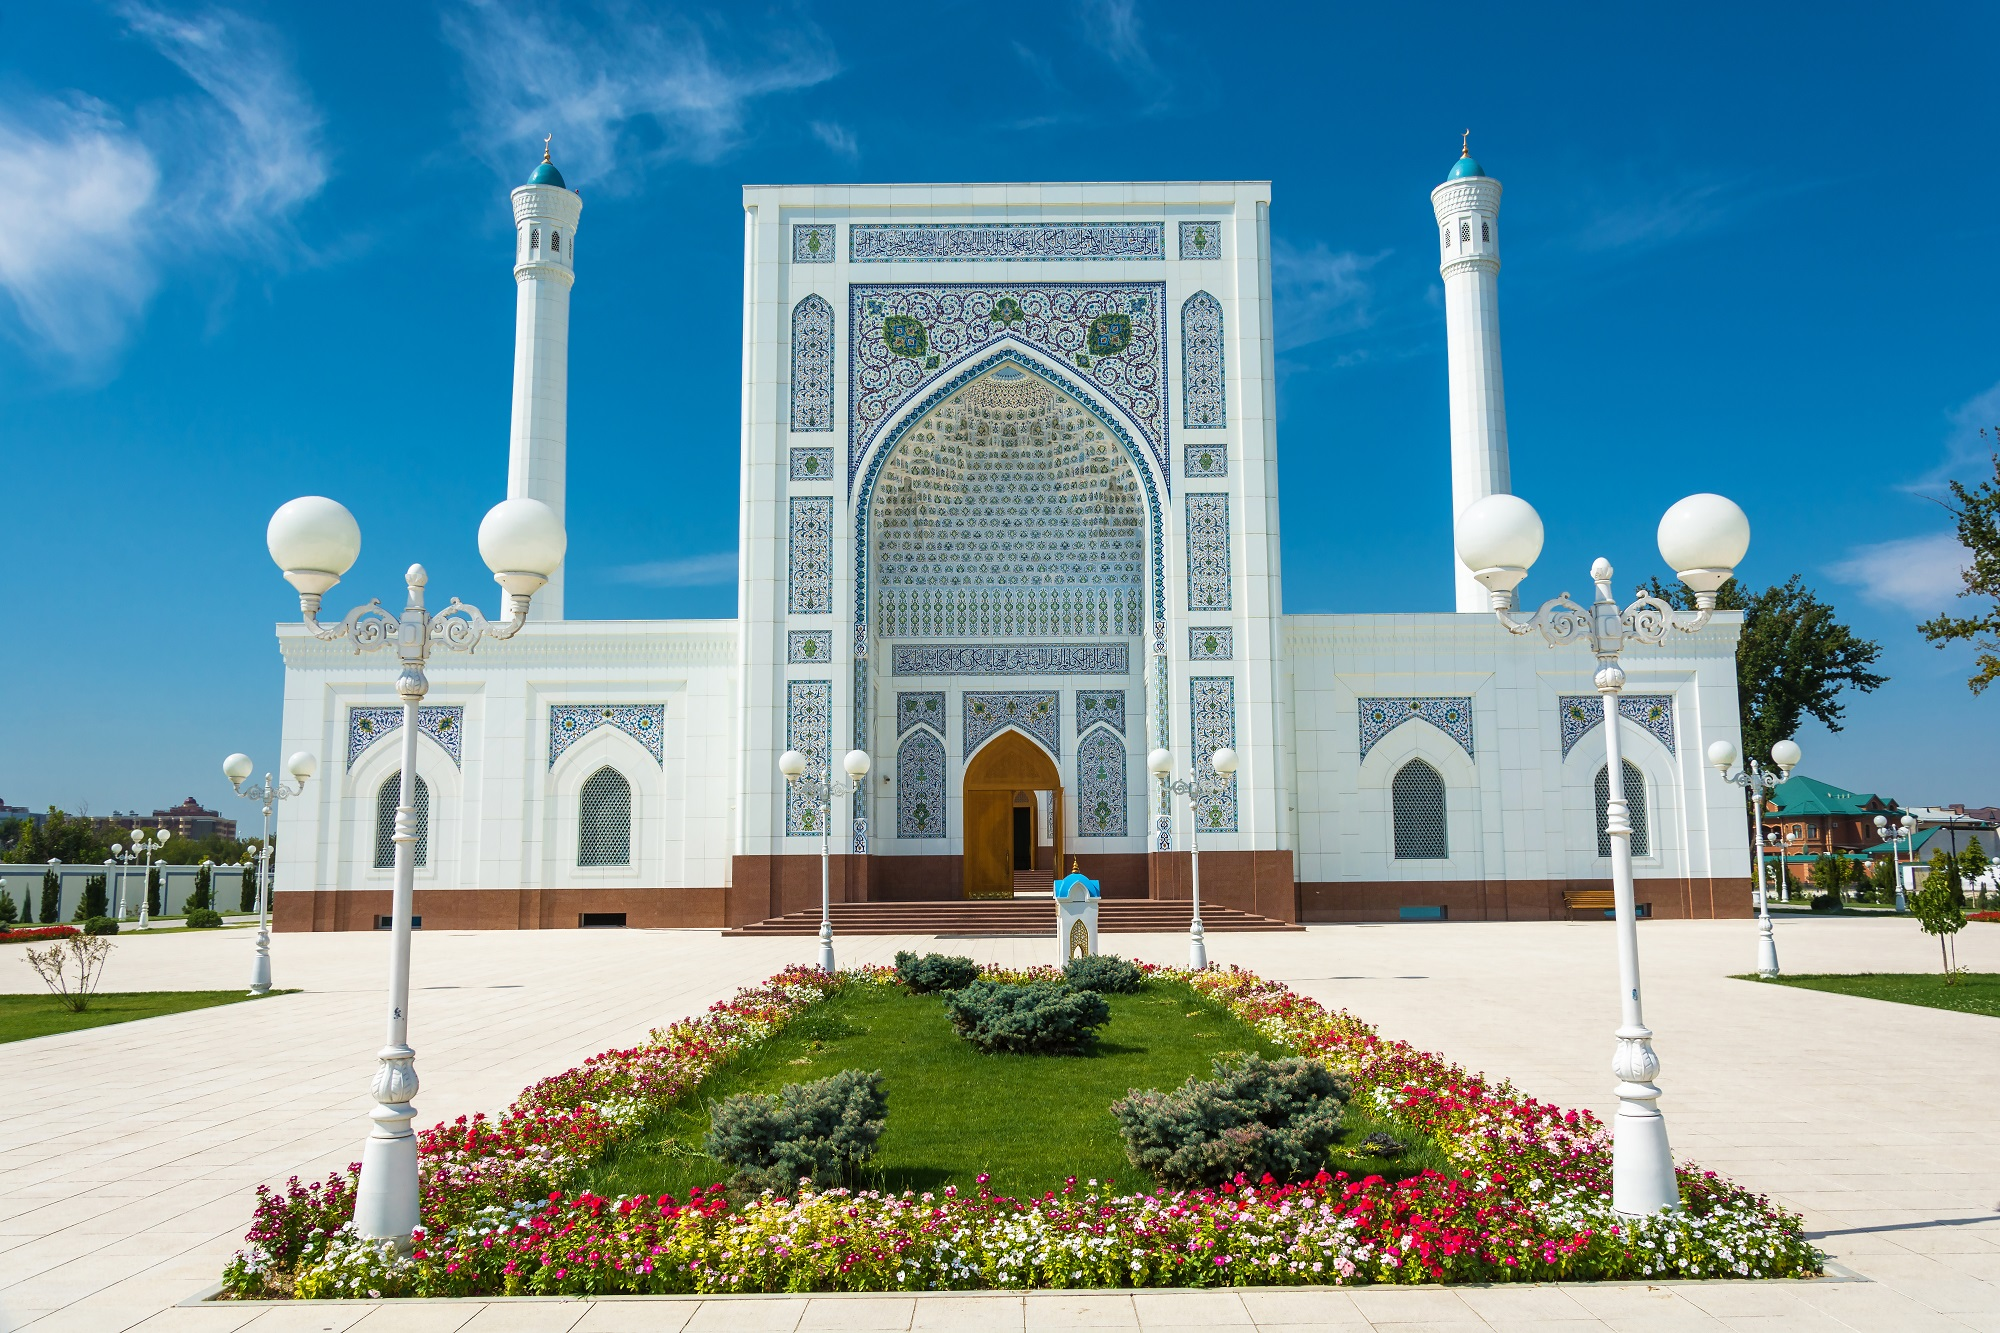 Beautiful white Minor mosque in Tashkent on a sunny day, Uzbekistan.